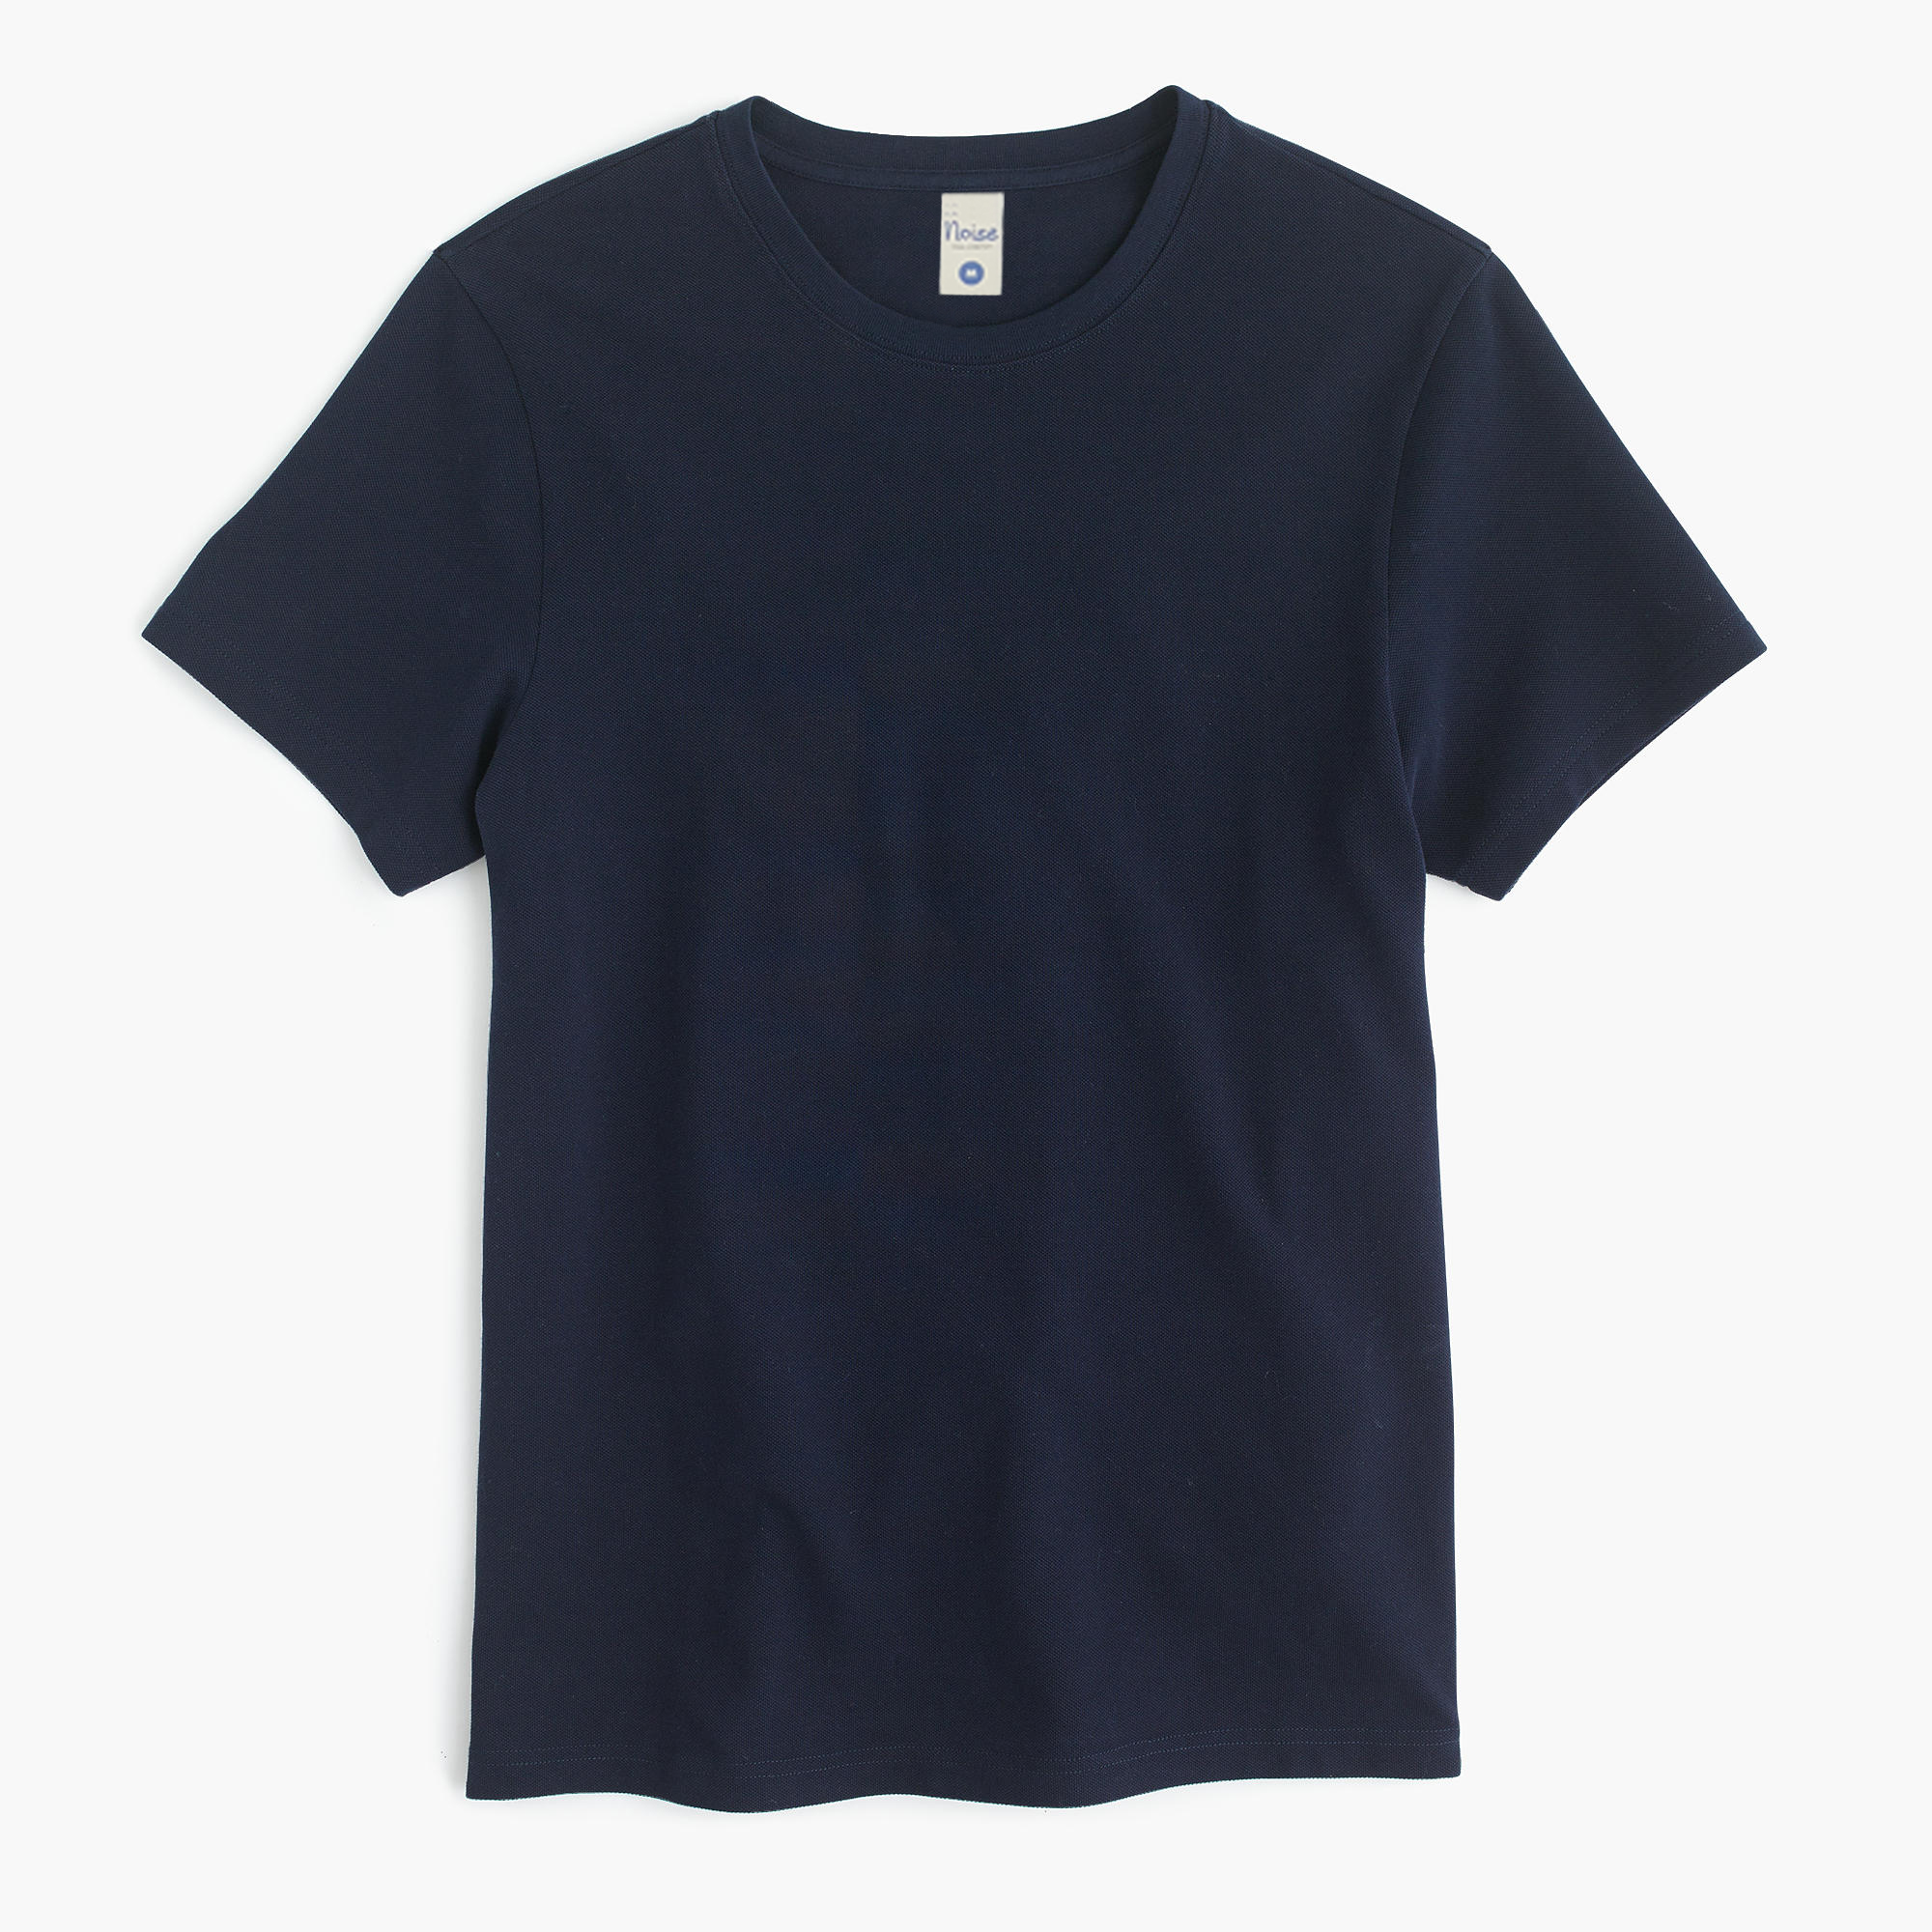 Crew neck short sleeves tee